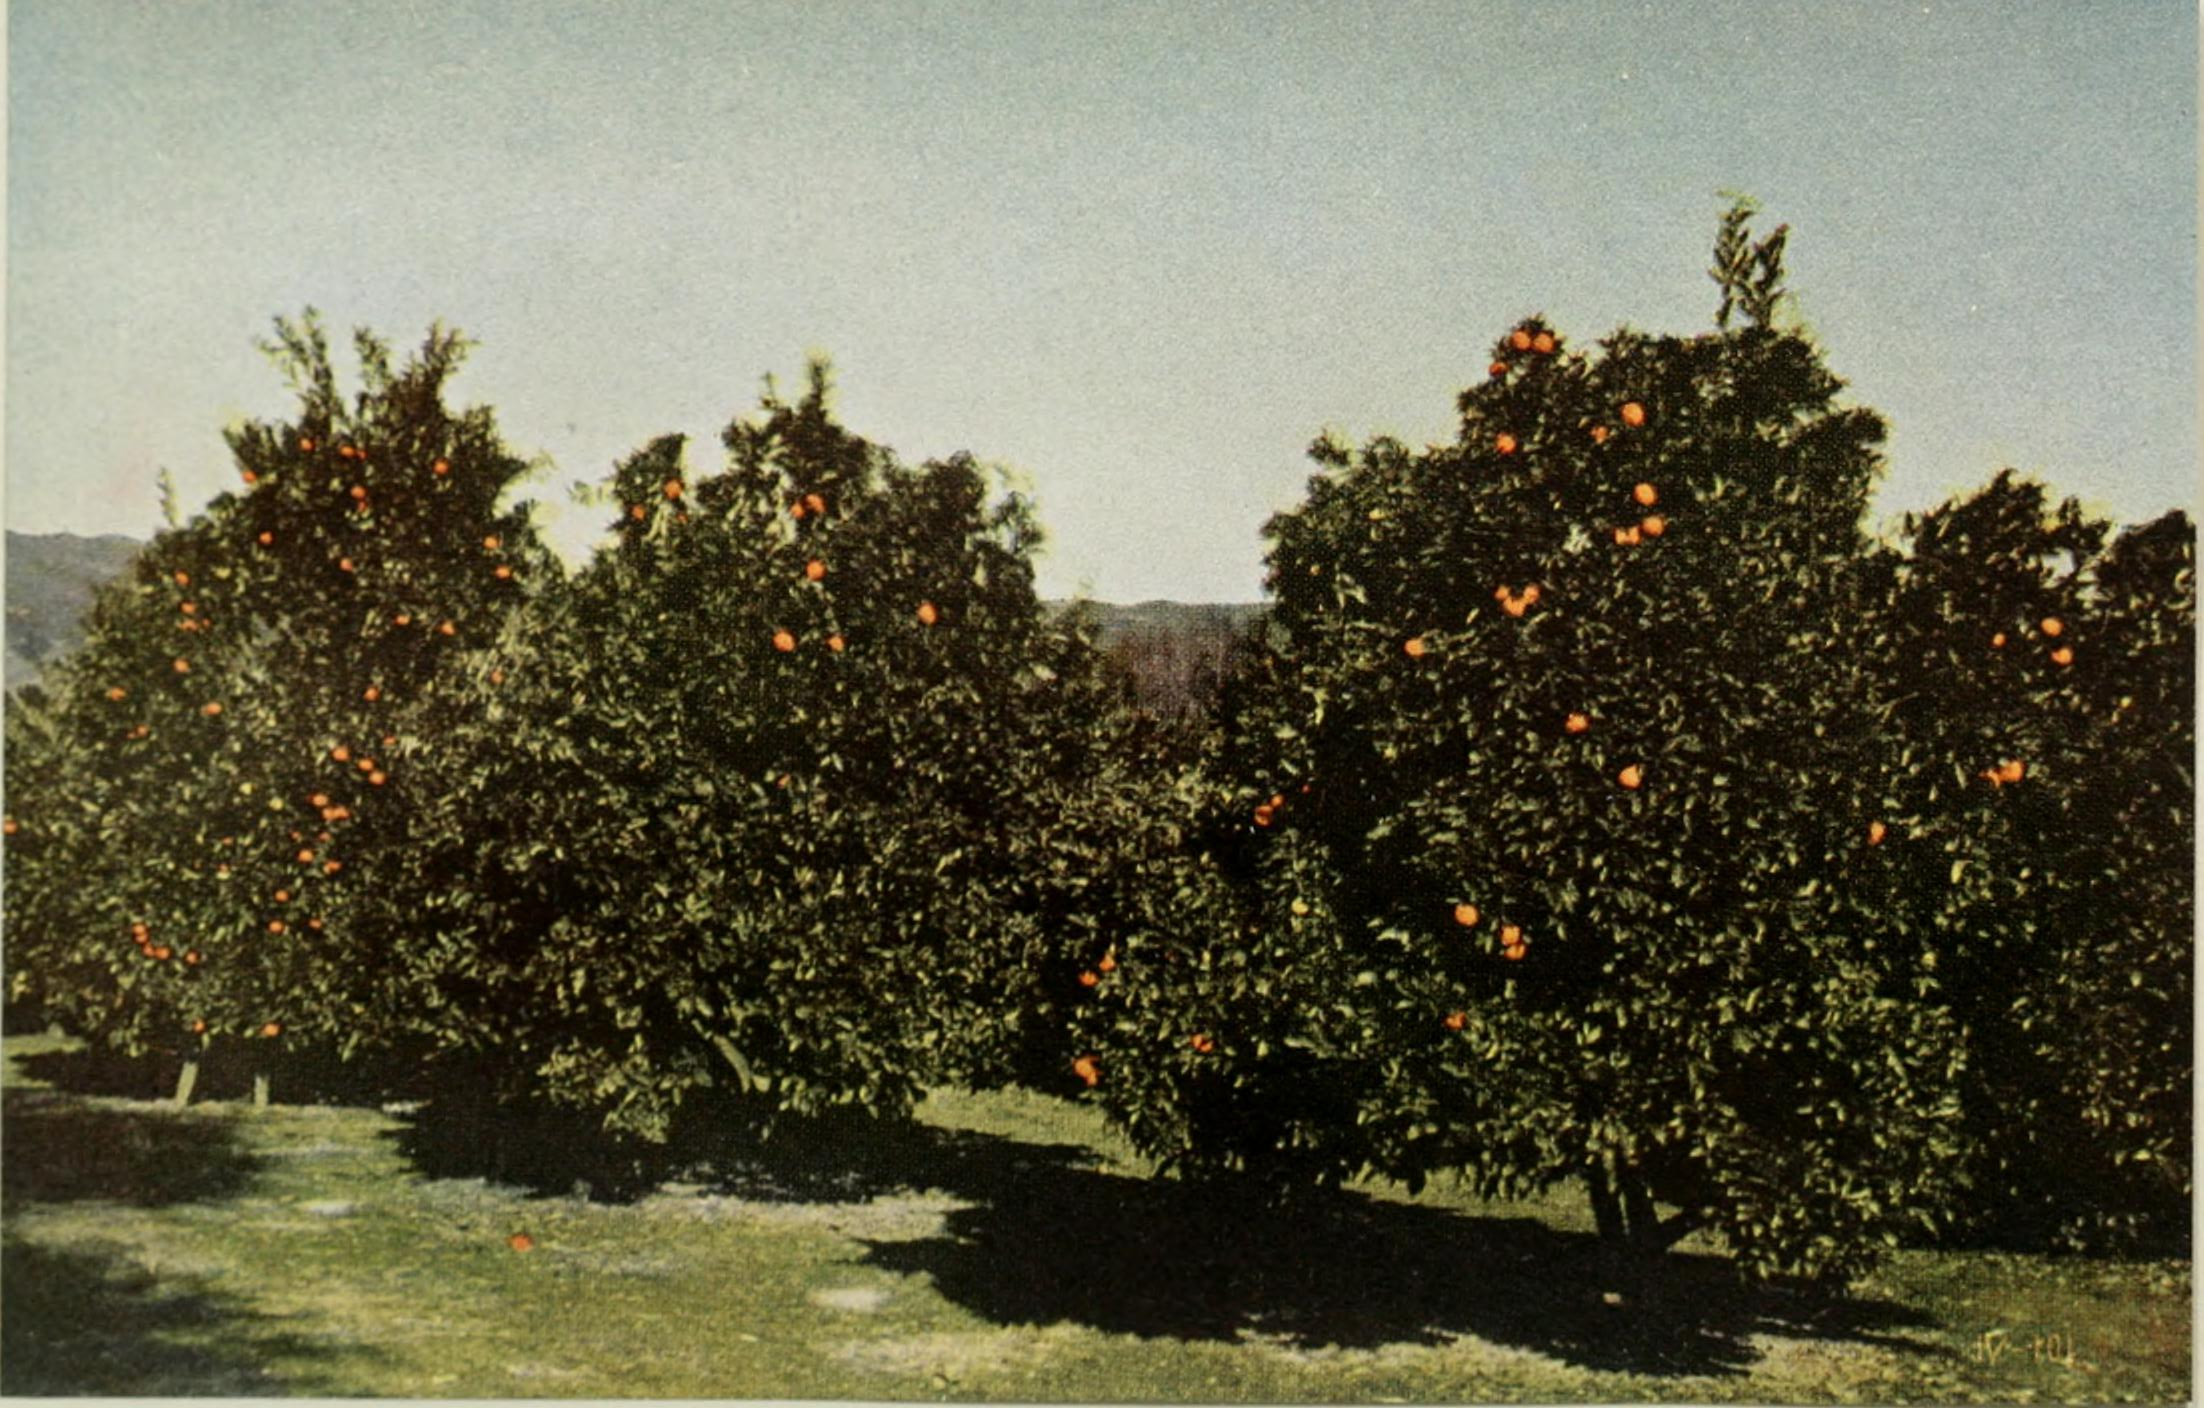 more than 100,000 experiments made during forty years devoted to plant improvement, with the assistance of the Luther Burbank Society and its entire membership